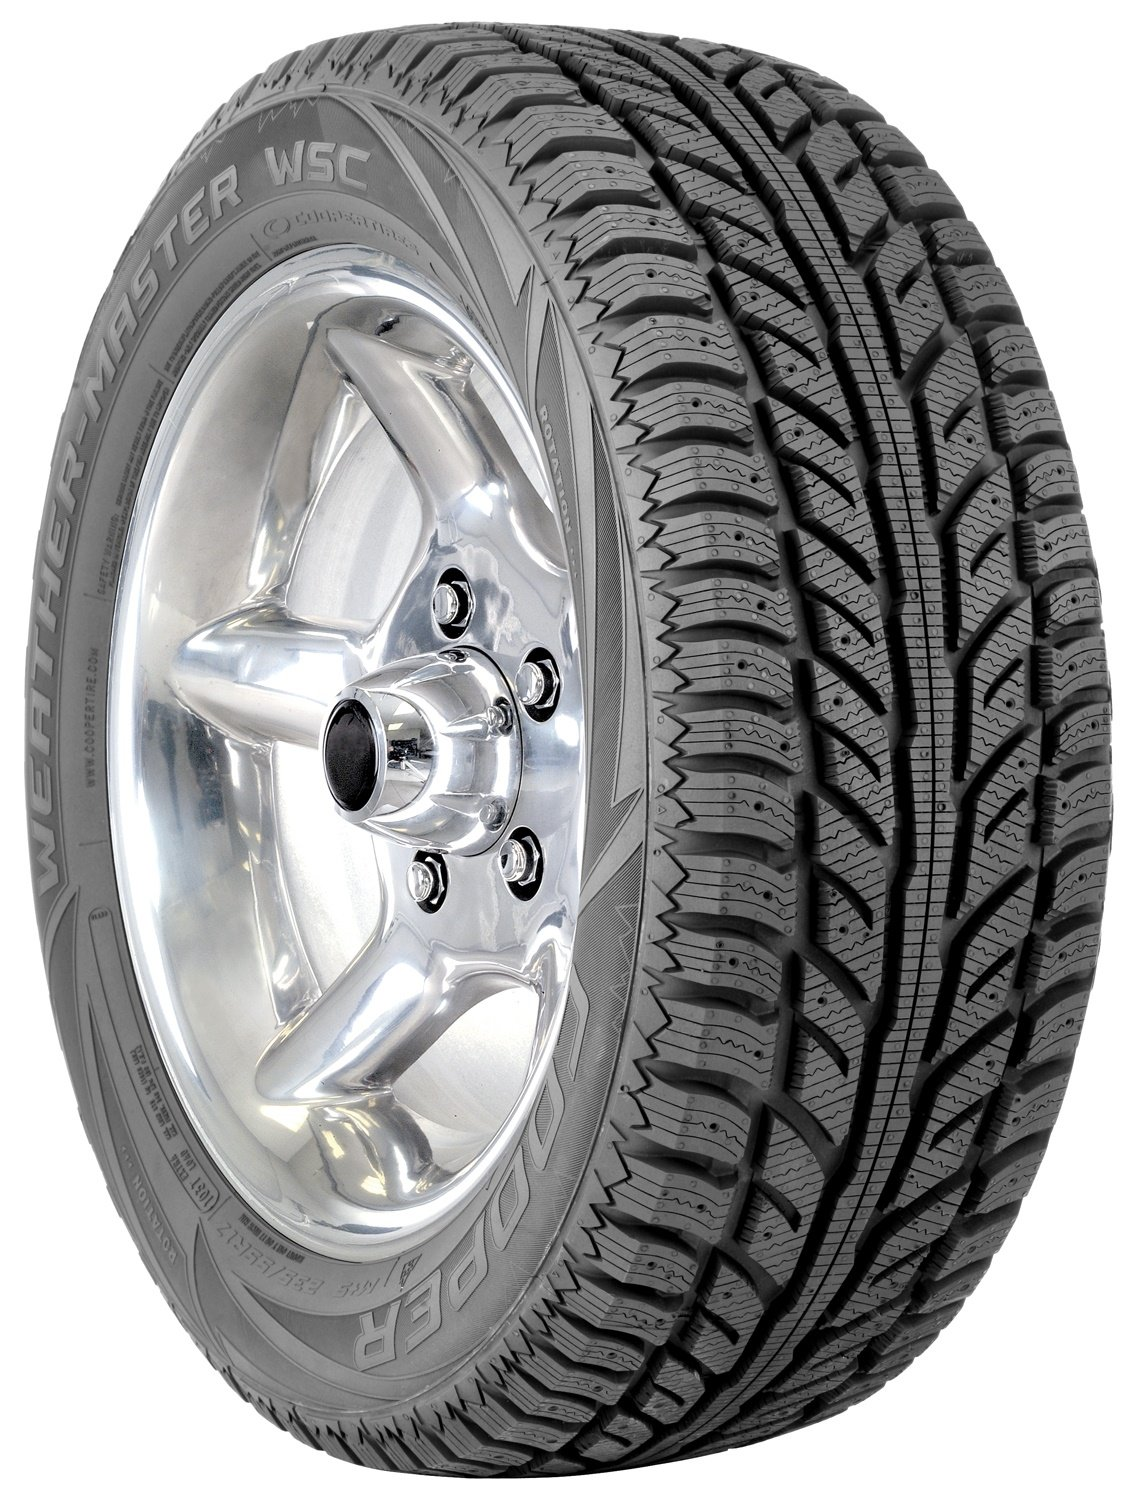 Cooper Weather-Master WSC Winter Radial Tire - 225/50R18 95T 90000021999